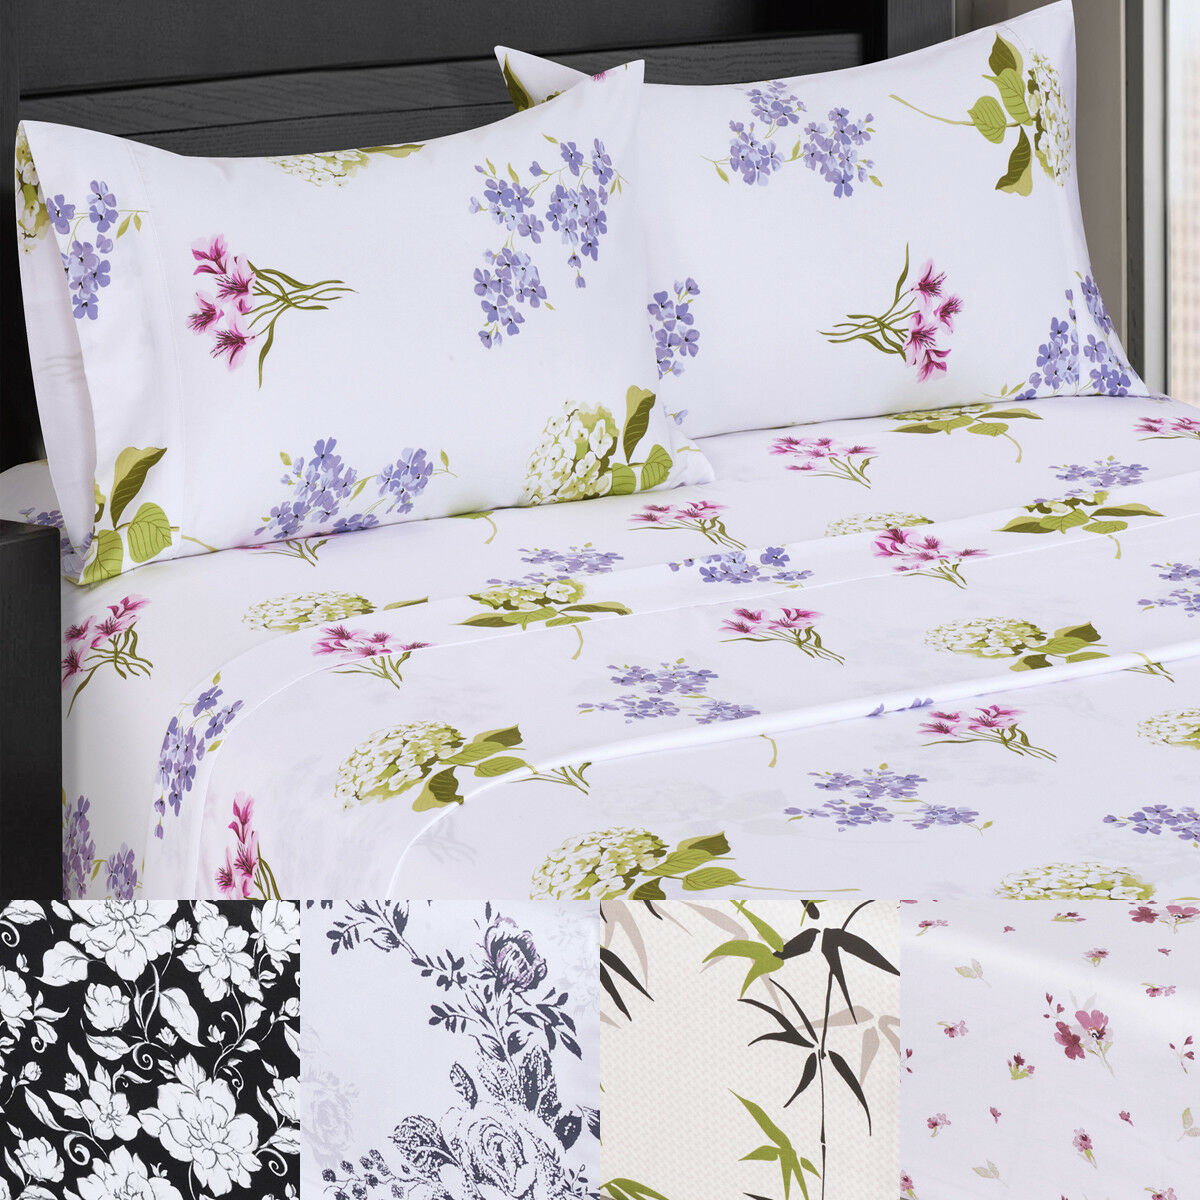 Elegant & Adorable Royal Tradition 300TC 100%Cotton Ultra soft Printed Sheet Set